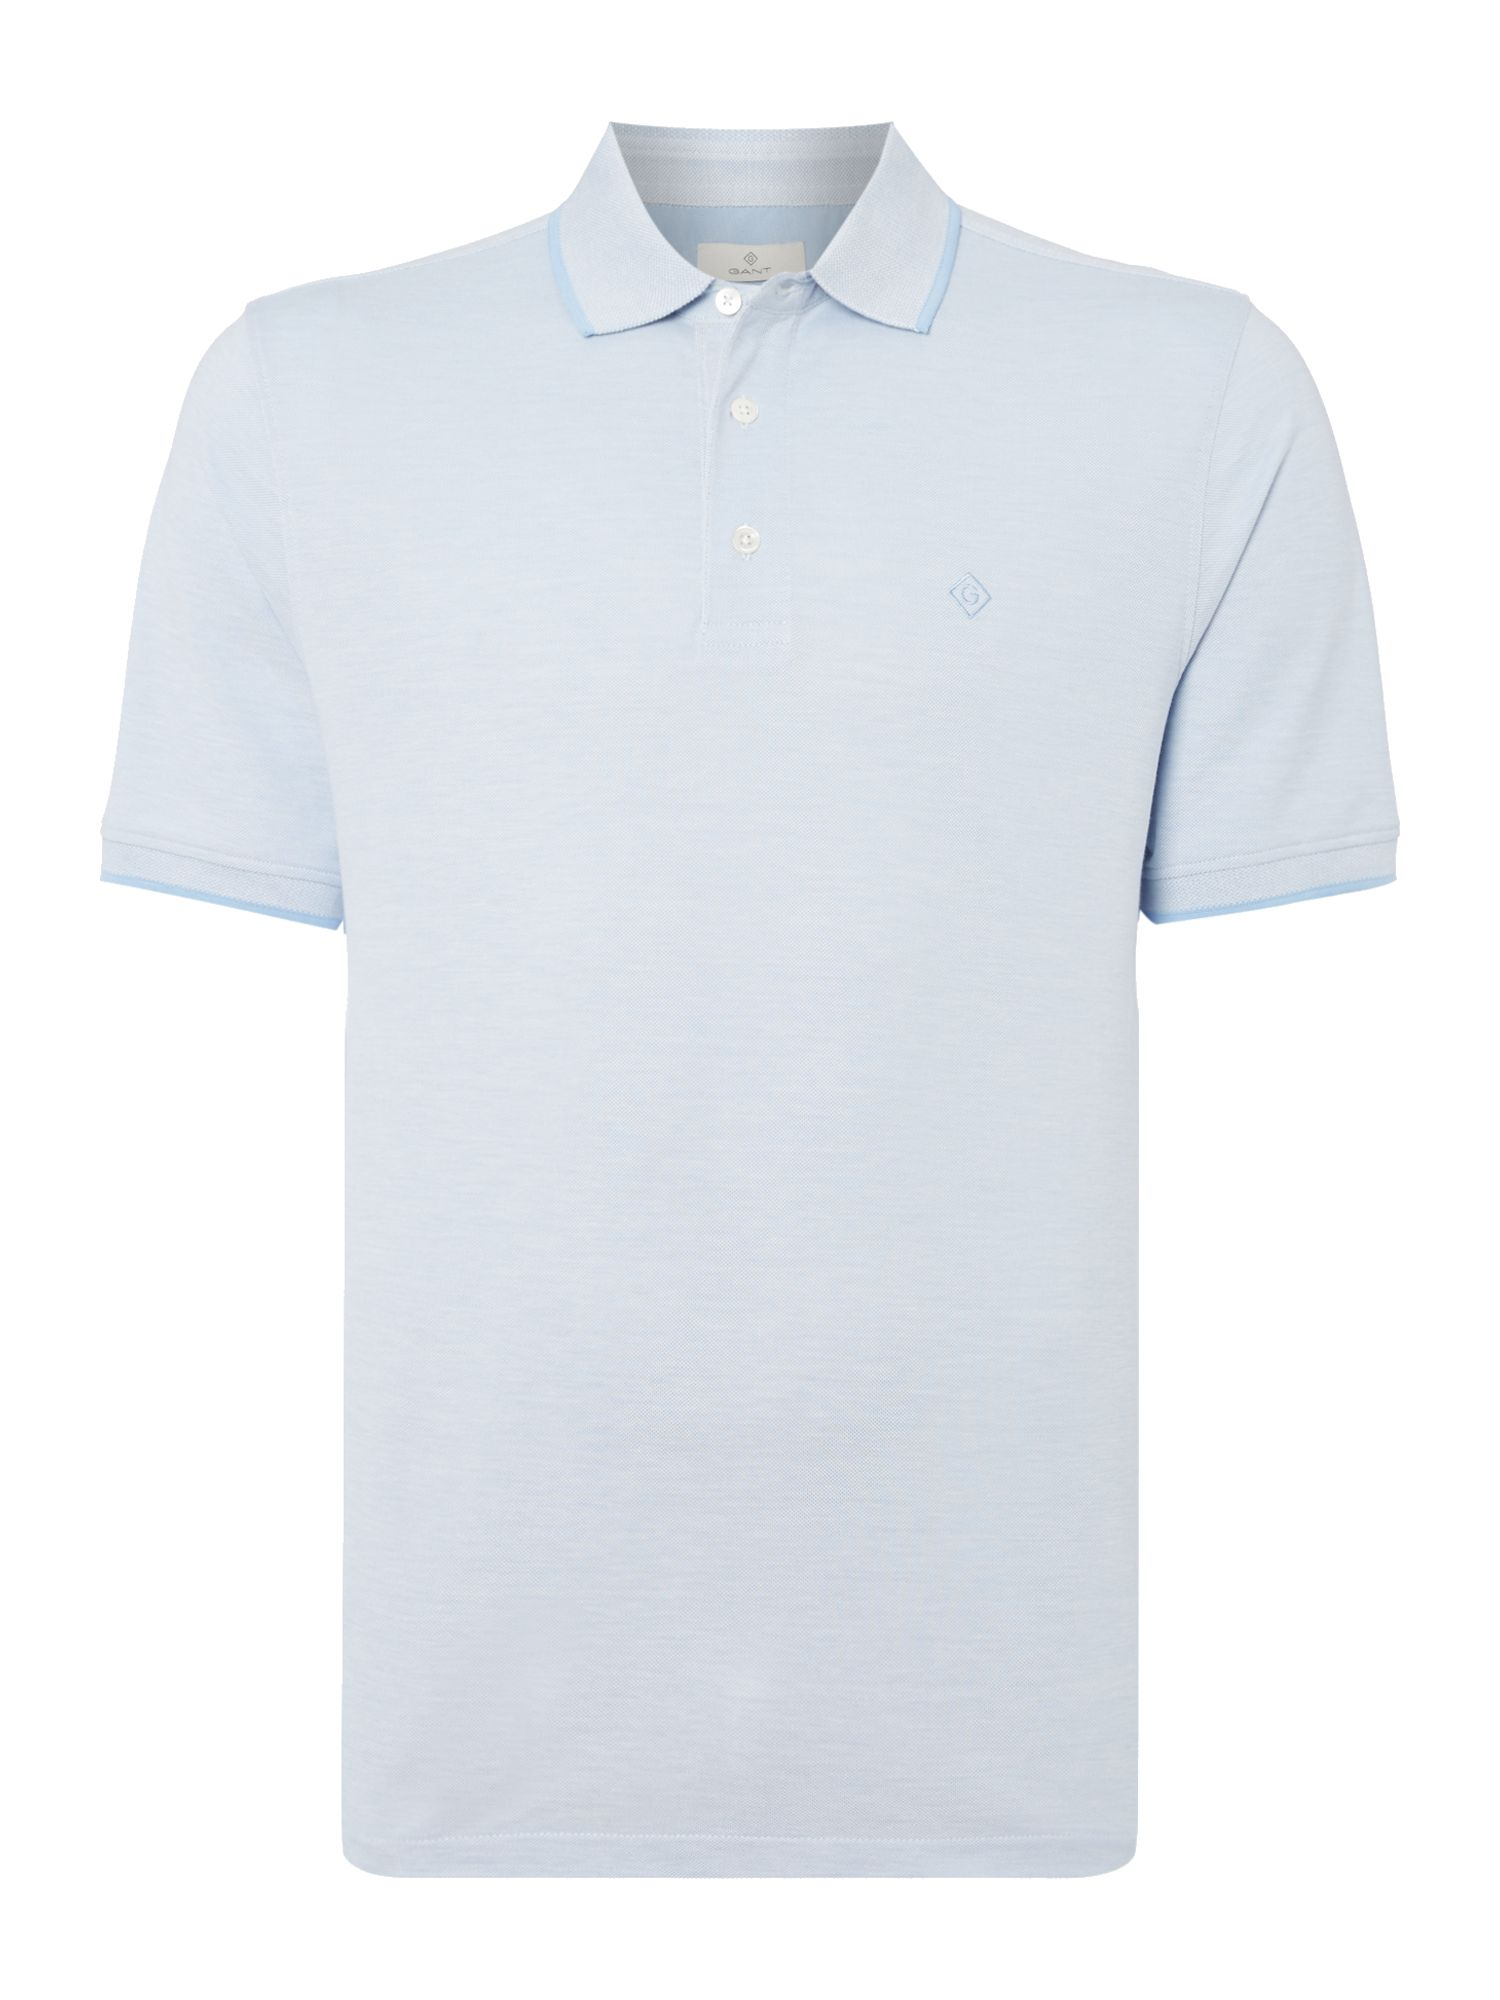 Men's Gant Short Sleeve Pique Polo, Light Blue